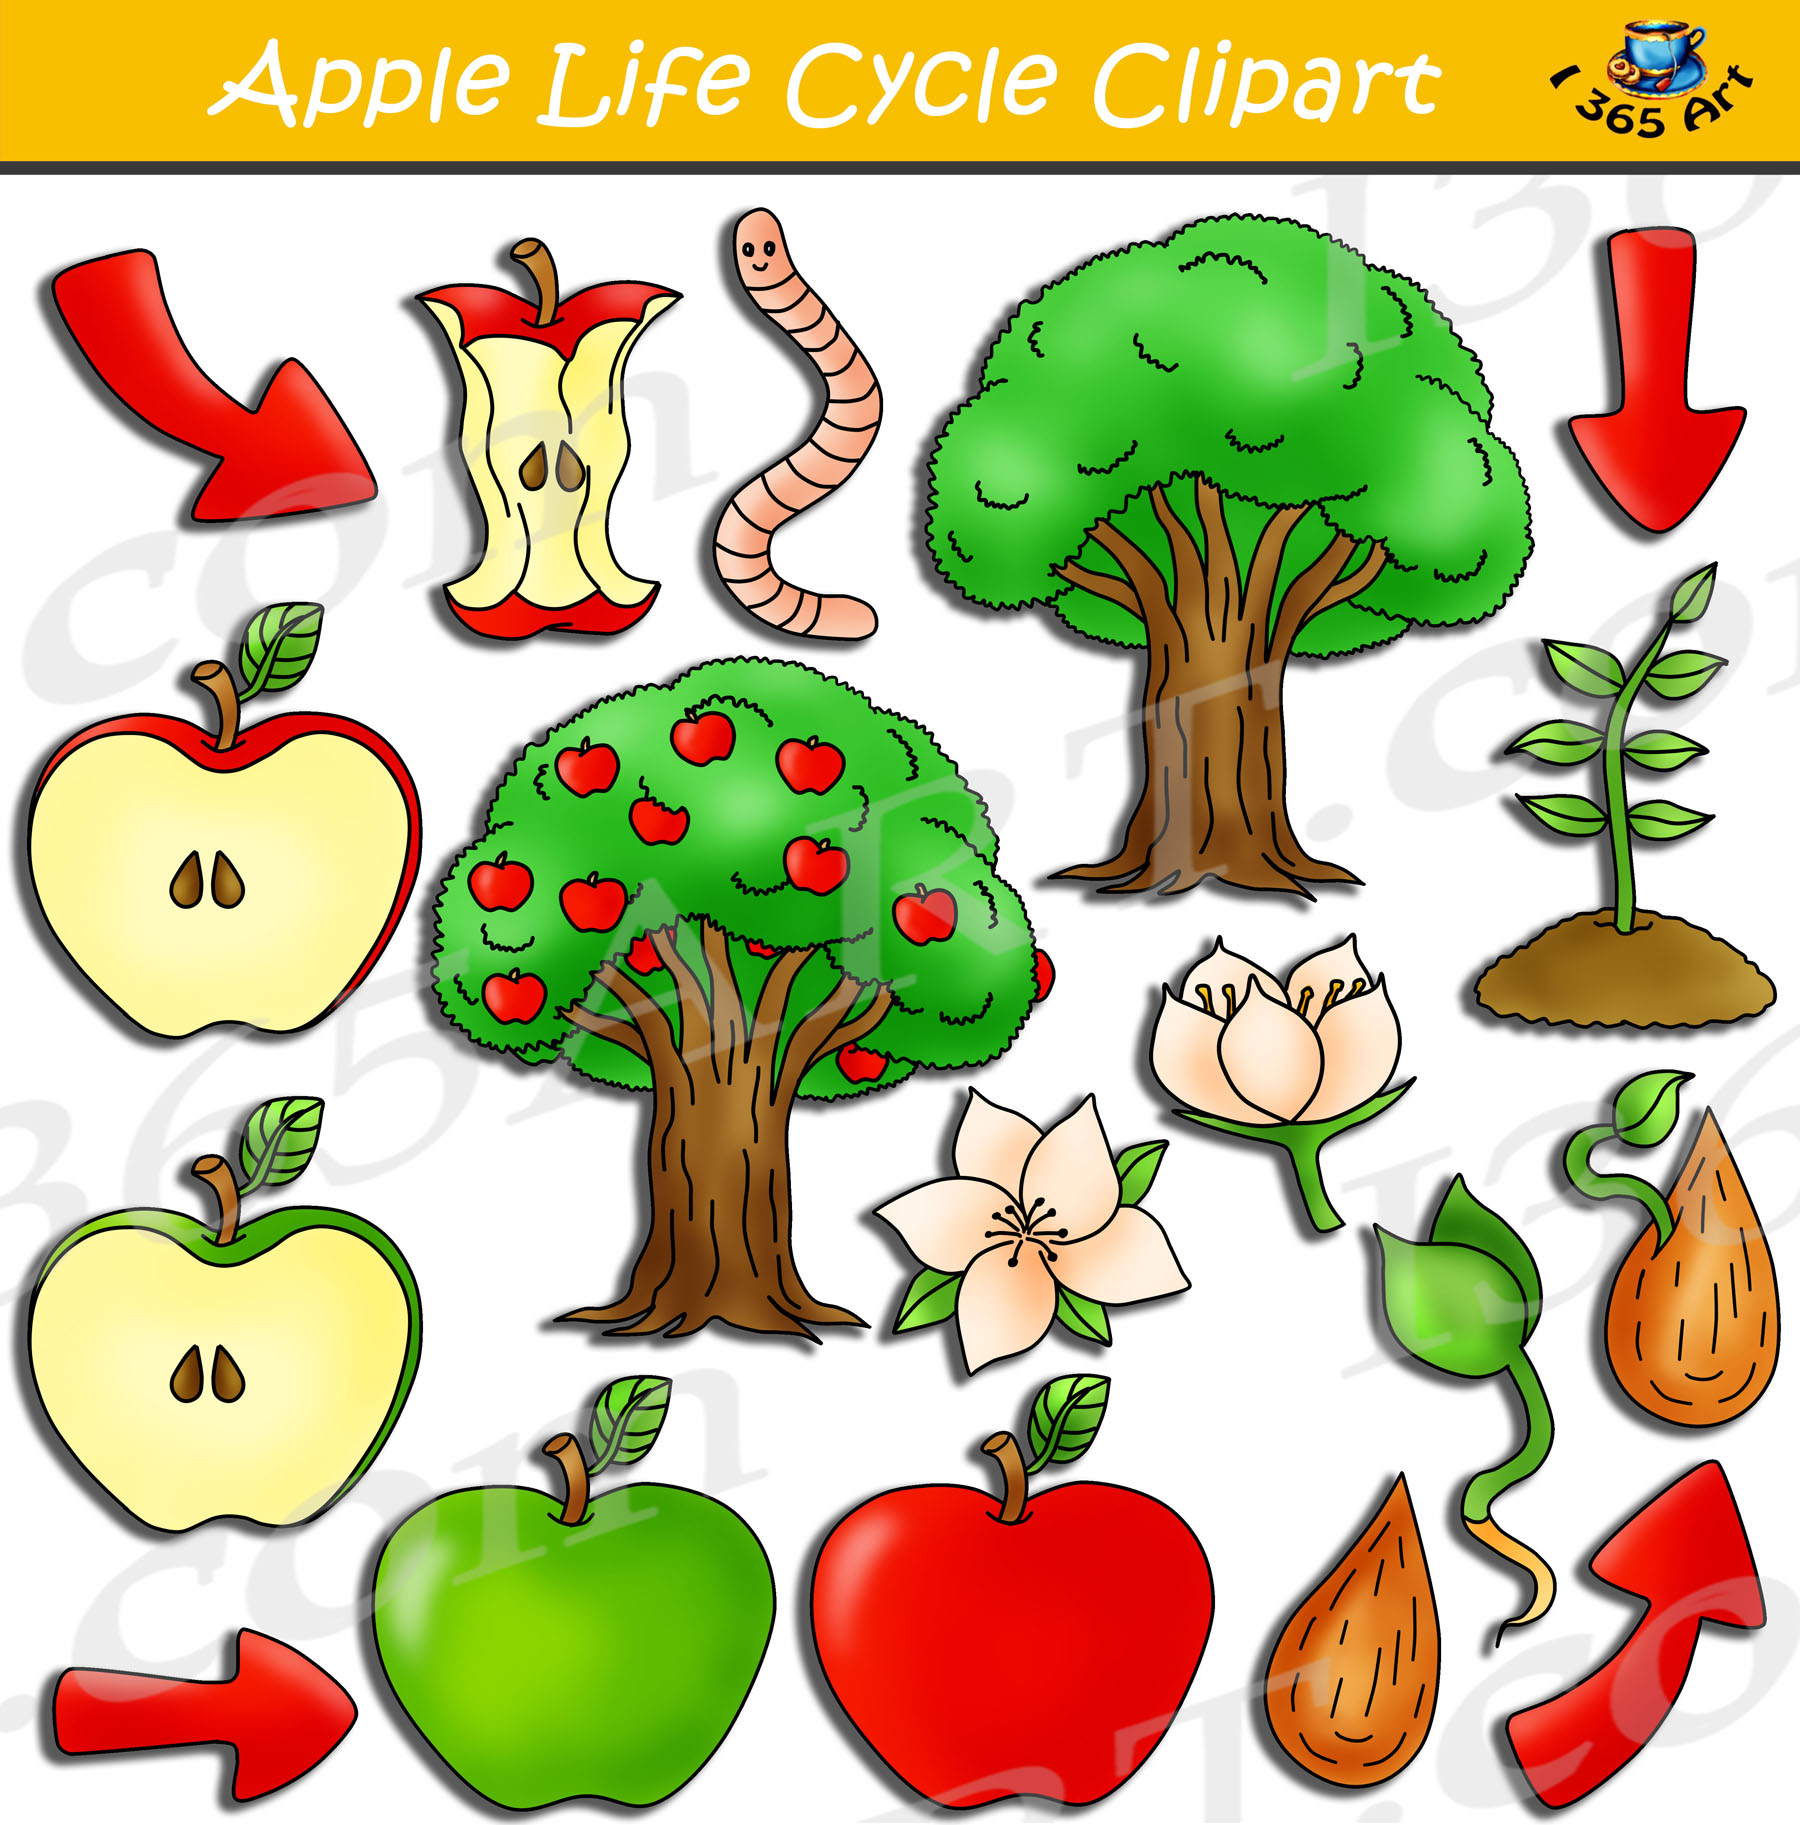 Apple Life Cycle Clipart Bundle Pack